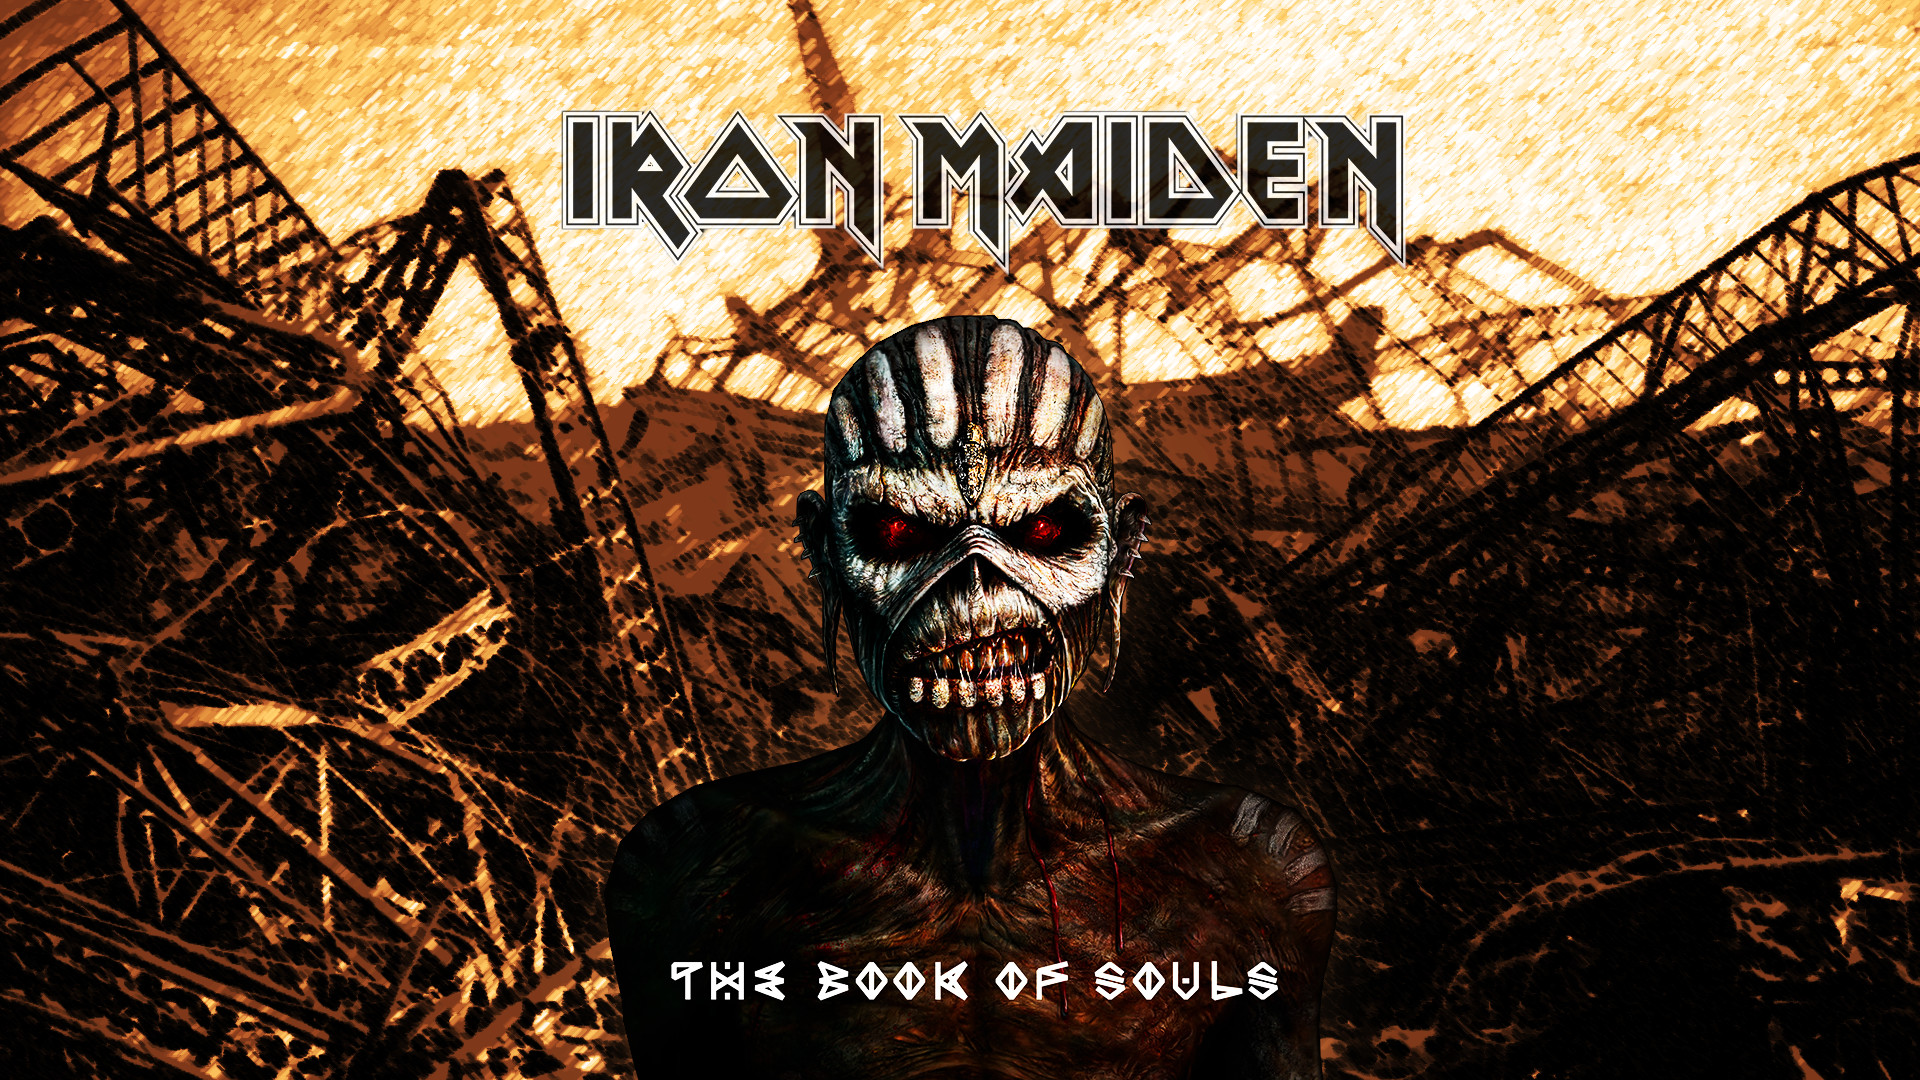 … Iron Maiden 'The Book of Souls' r101 Wallpaper …